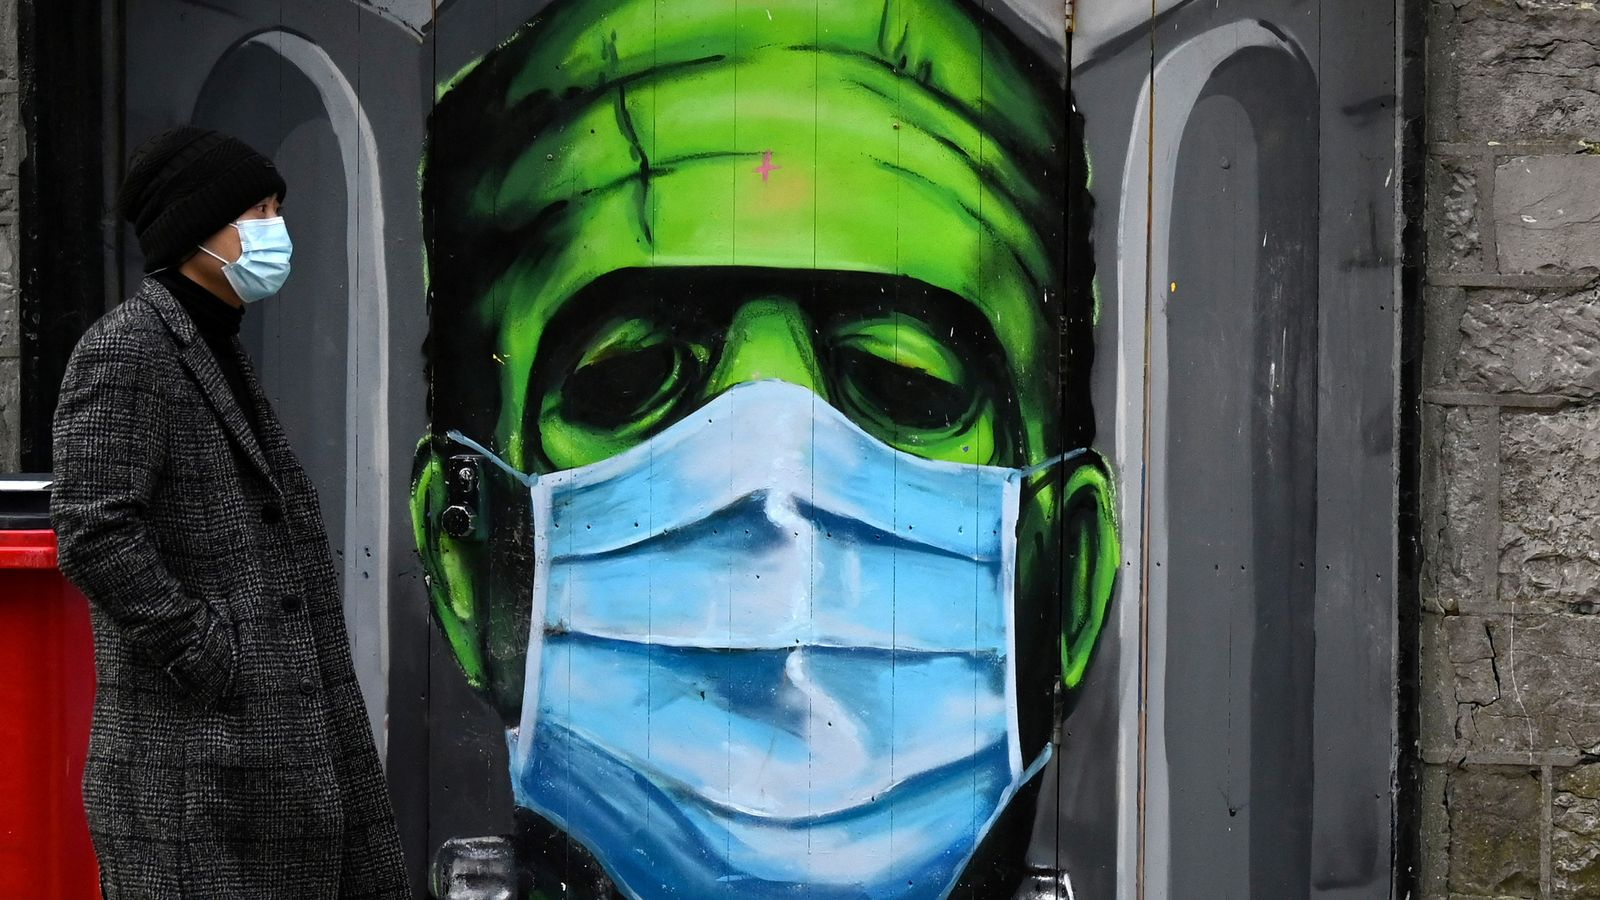 COVID-19: How did Ireland find itself with the highest infection rate in the world?